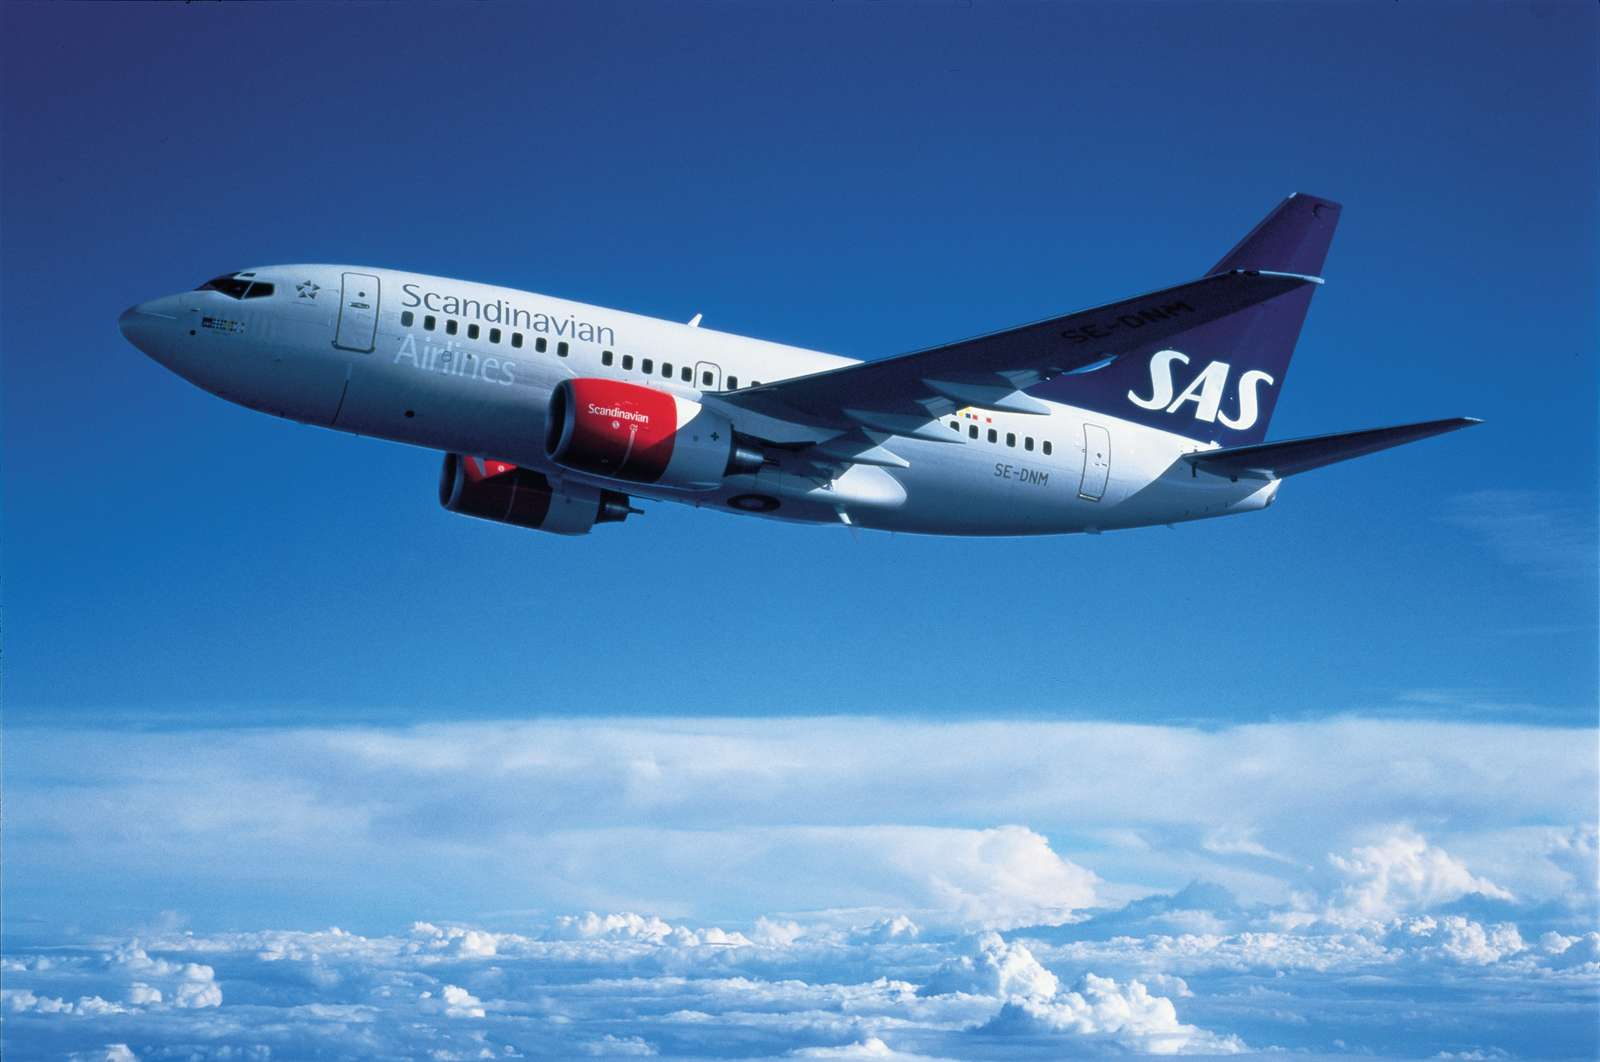 SAS AIRLINE Image Courtesy: Copenhagen Media Center